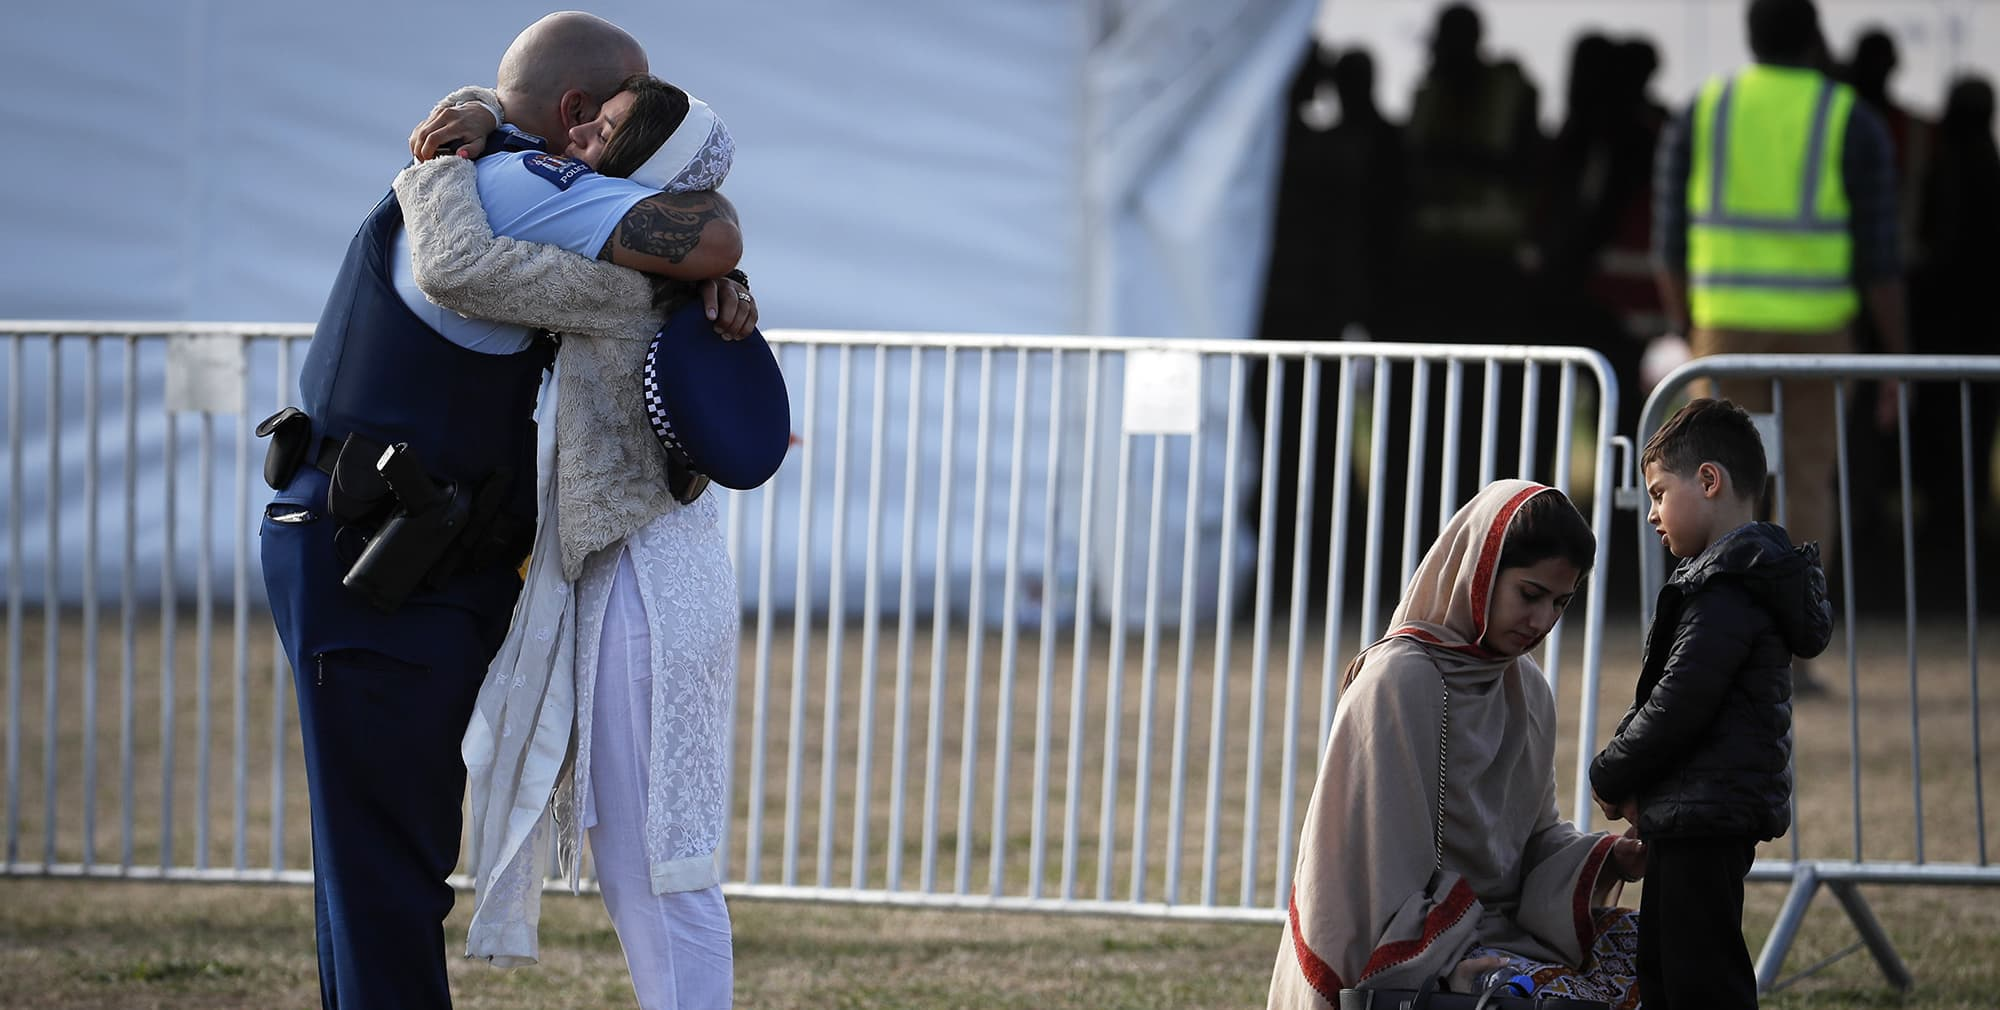 A police official hugs a relative after the burial of a victim in the mass shootings last week at the Memorial Park Cemetery in Christchurch, New Zealand, Friday, March 22, 2019. (AP Photo/Vincent Thian) — Copyright 2019 The Associated Press. All rights reserved